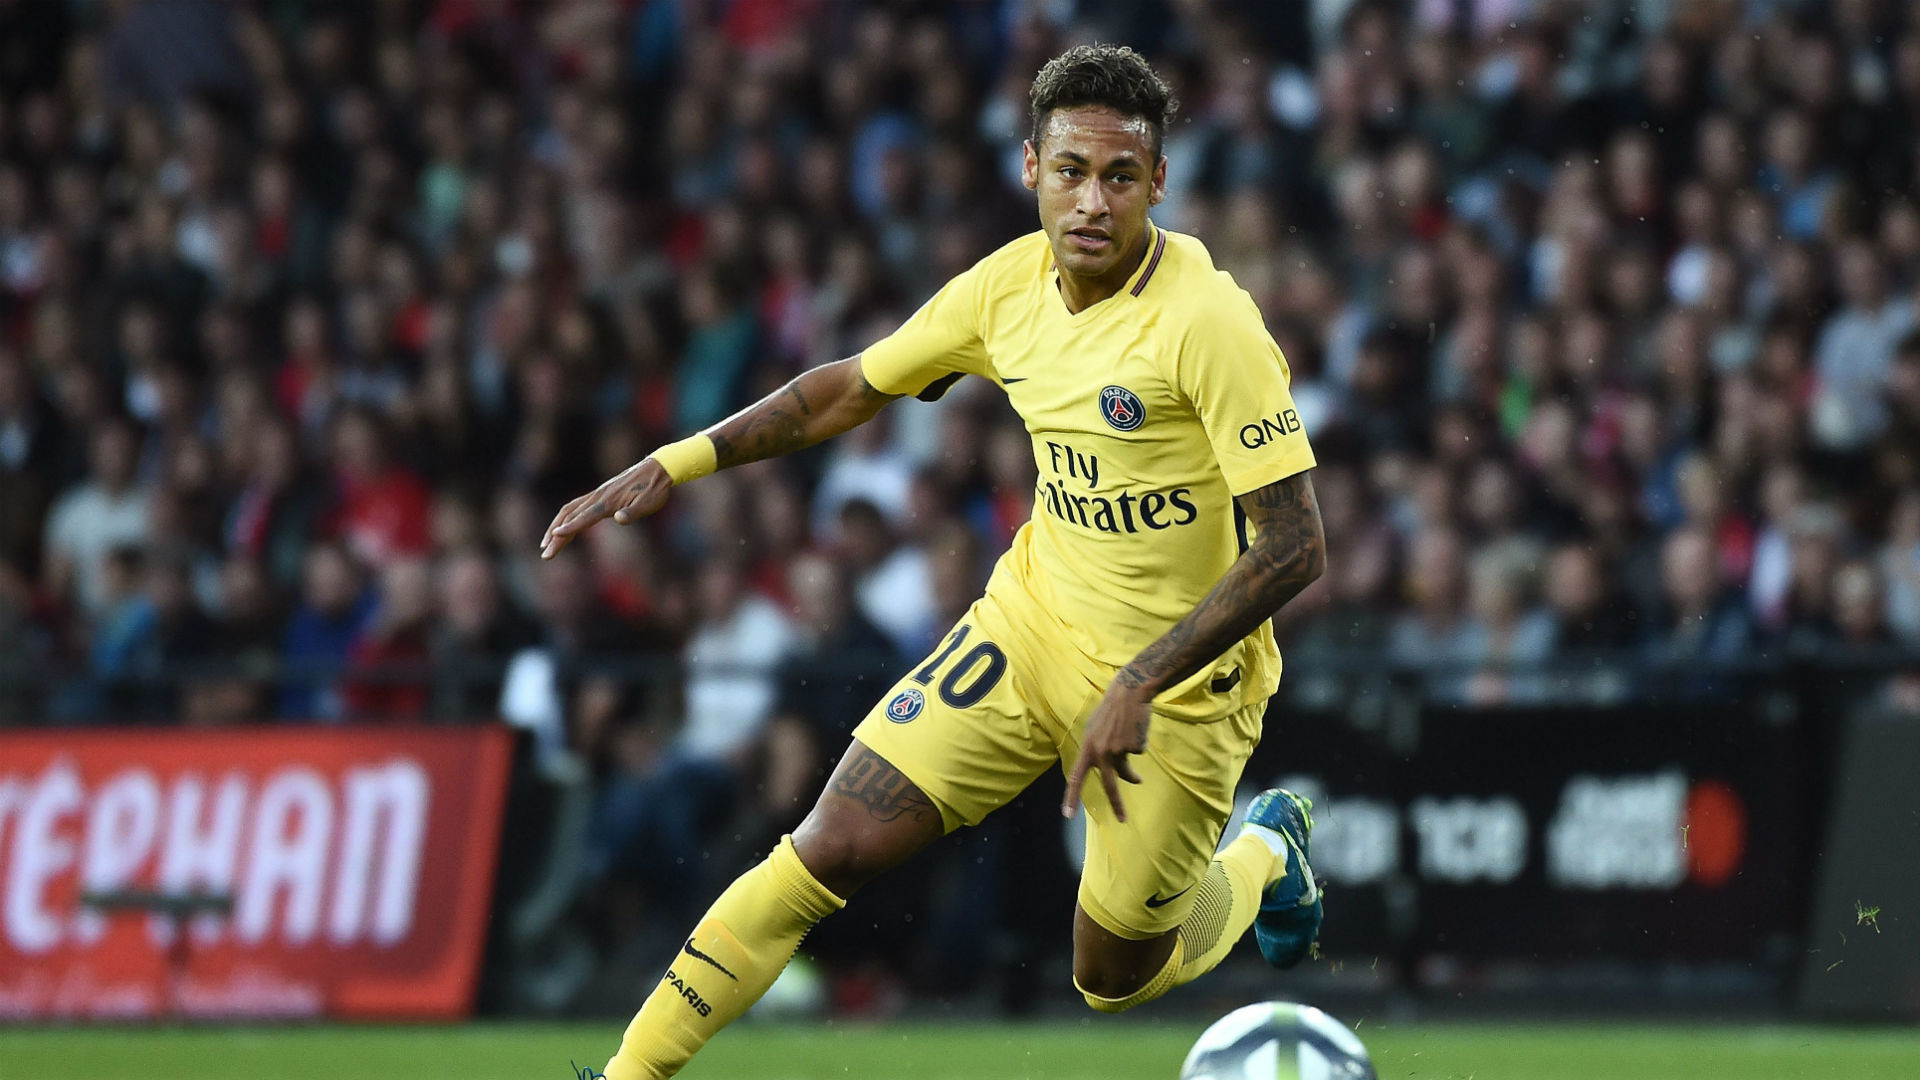 Neymar scores on his debut as PSG defeat Guingamp 3-0